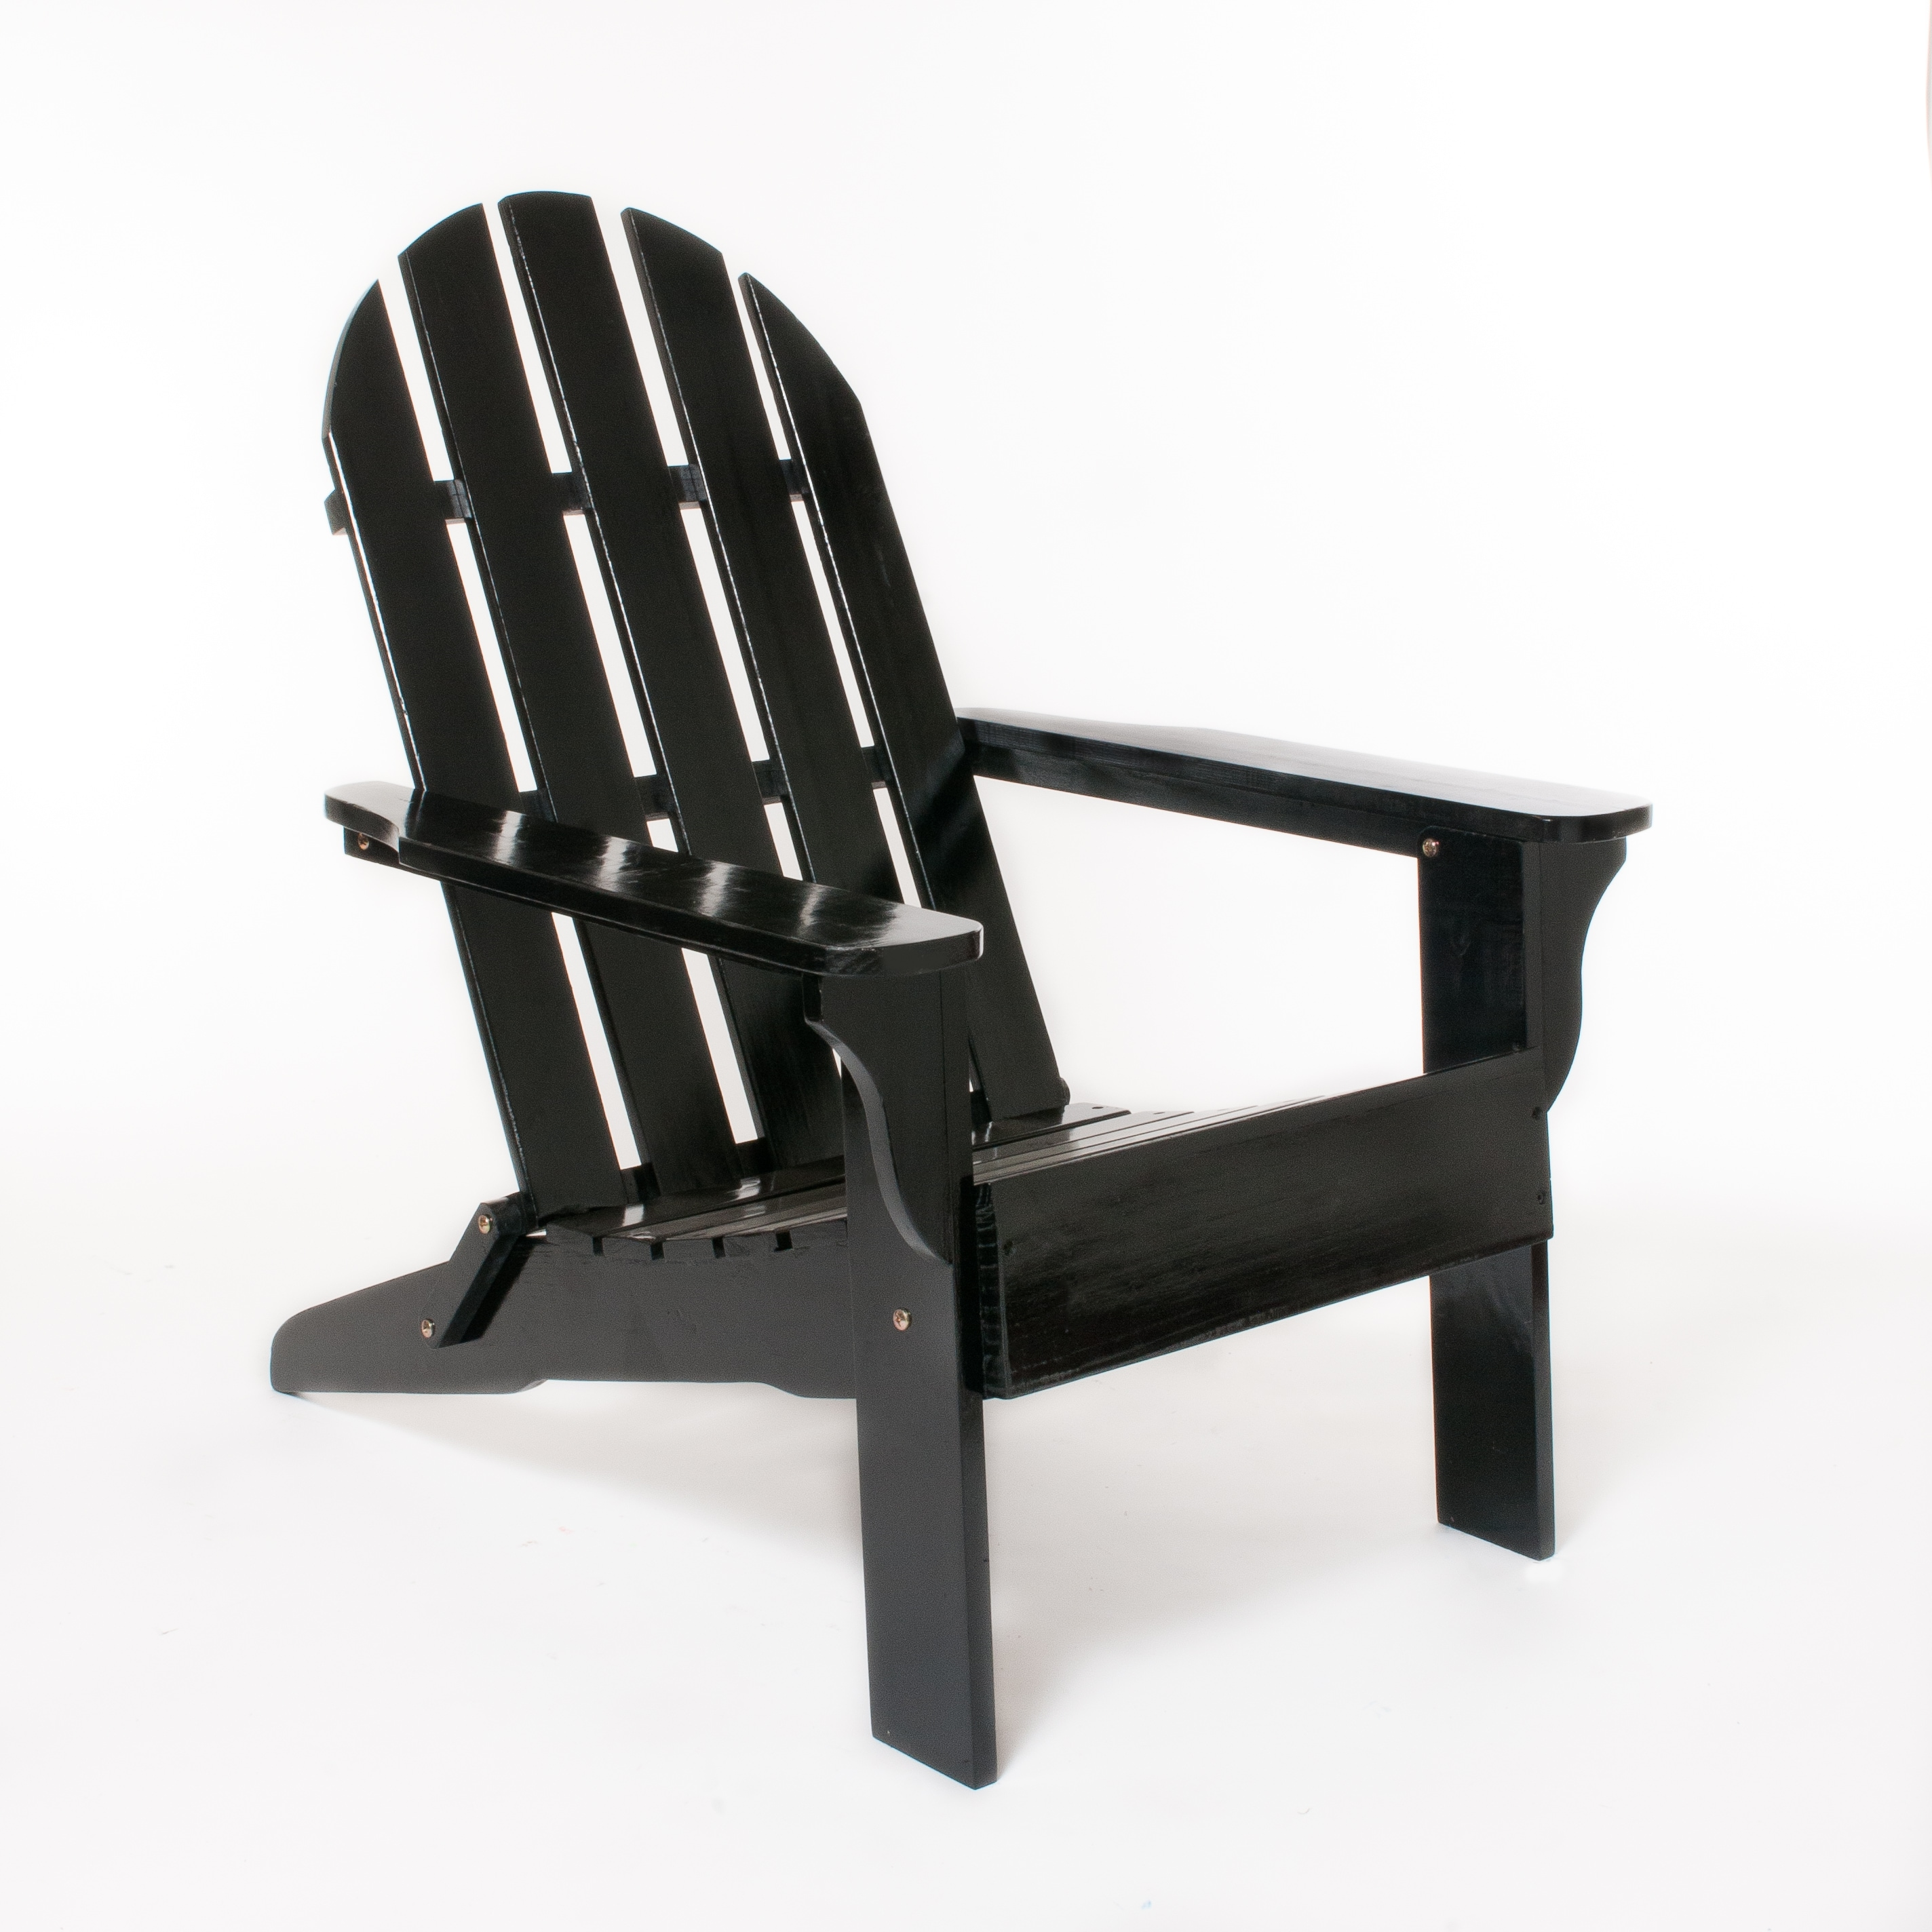 adirondack chair overstock shopping big discounts on sofas chairs